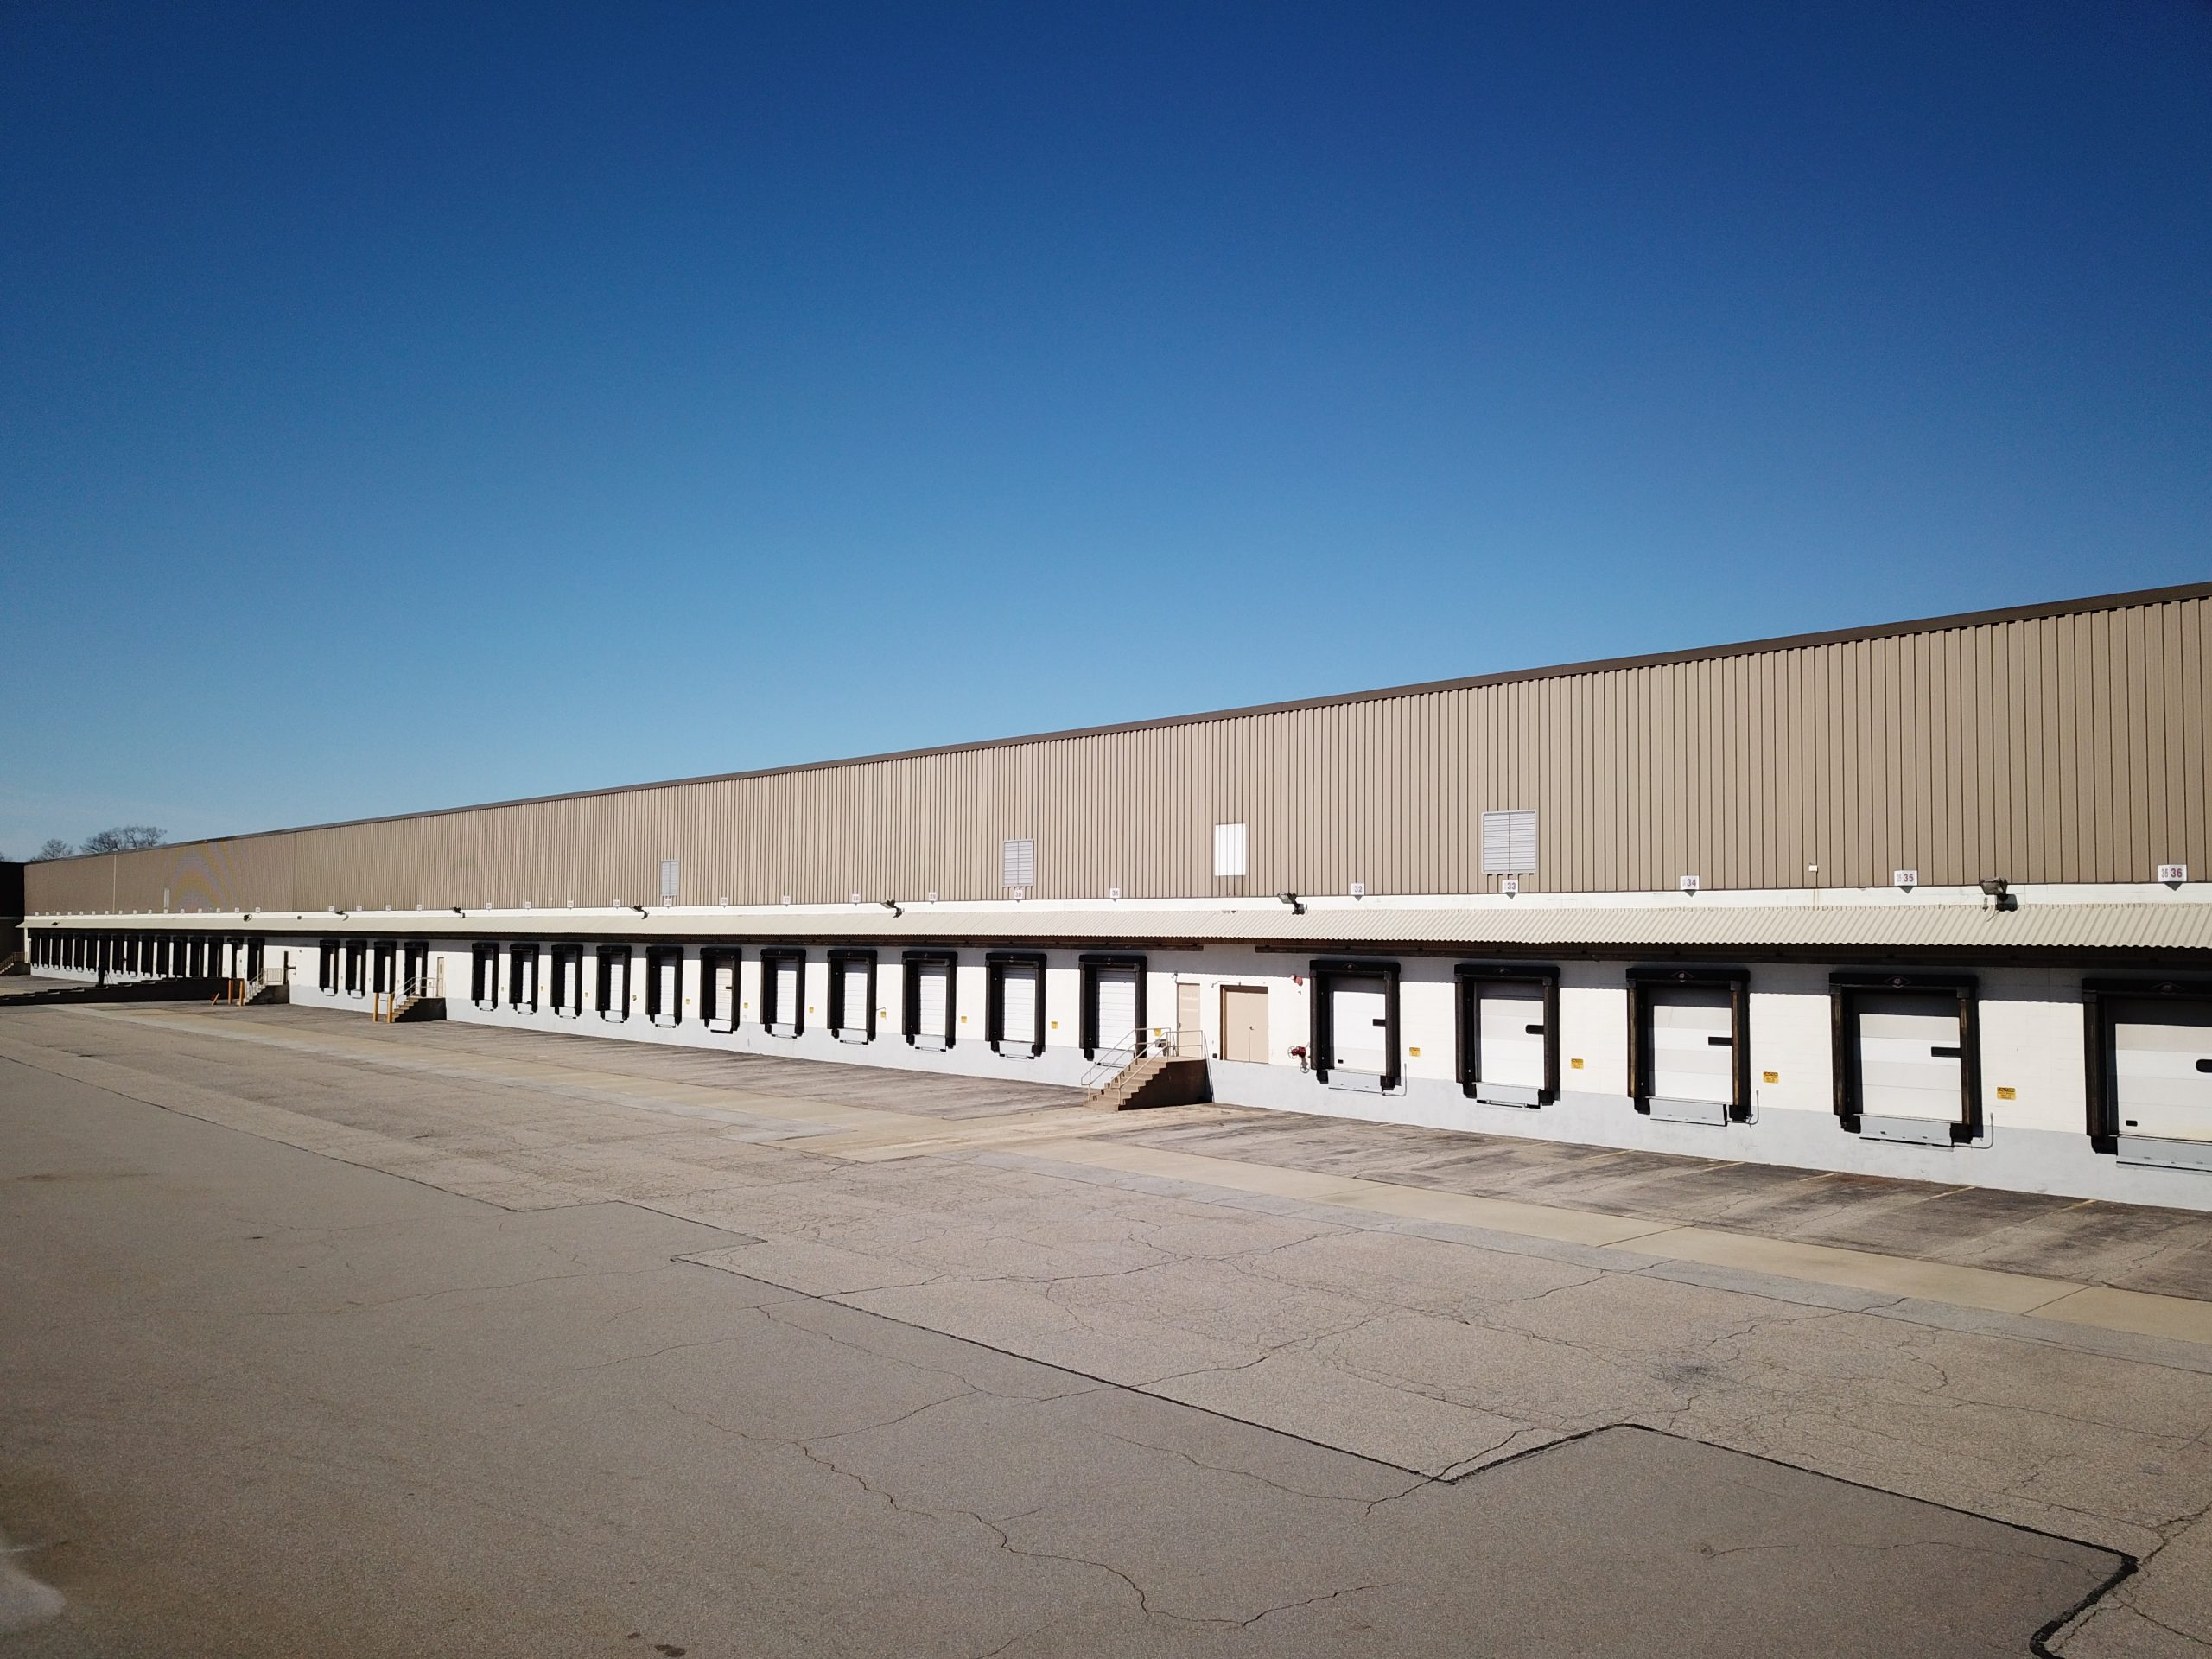 loading docks of commercial real estate drone photograph